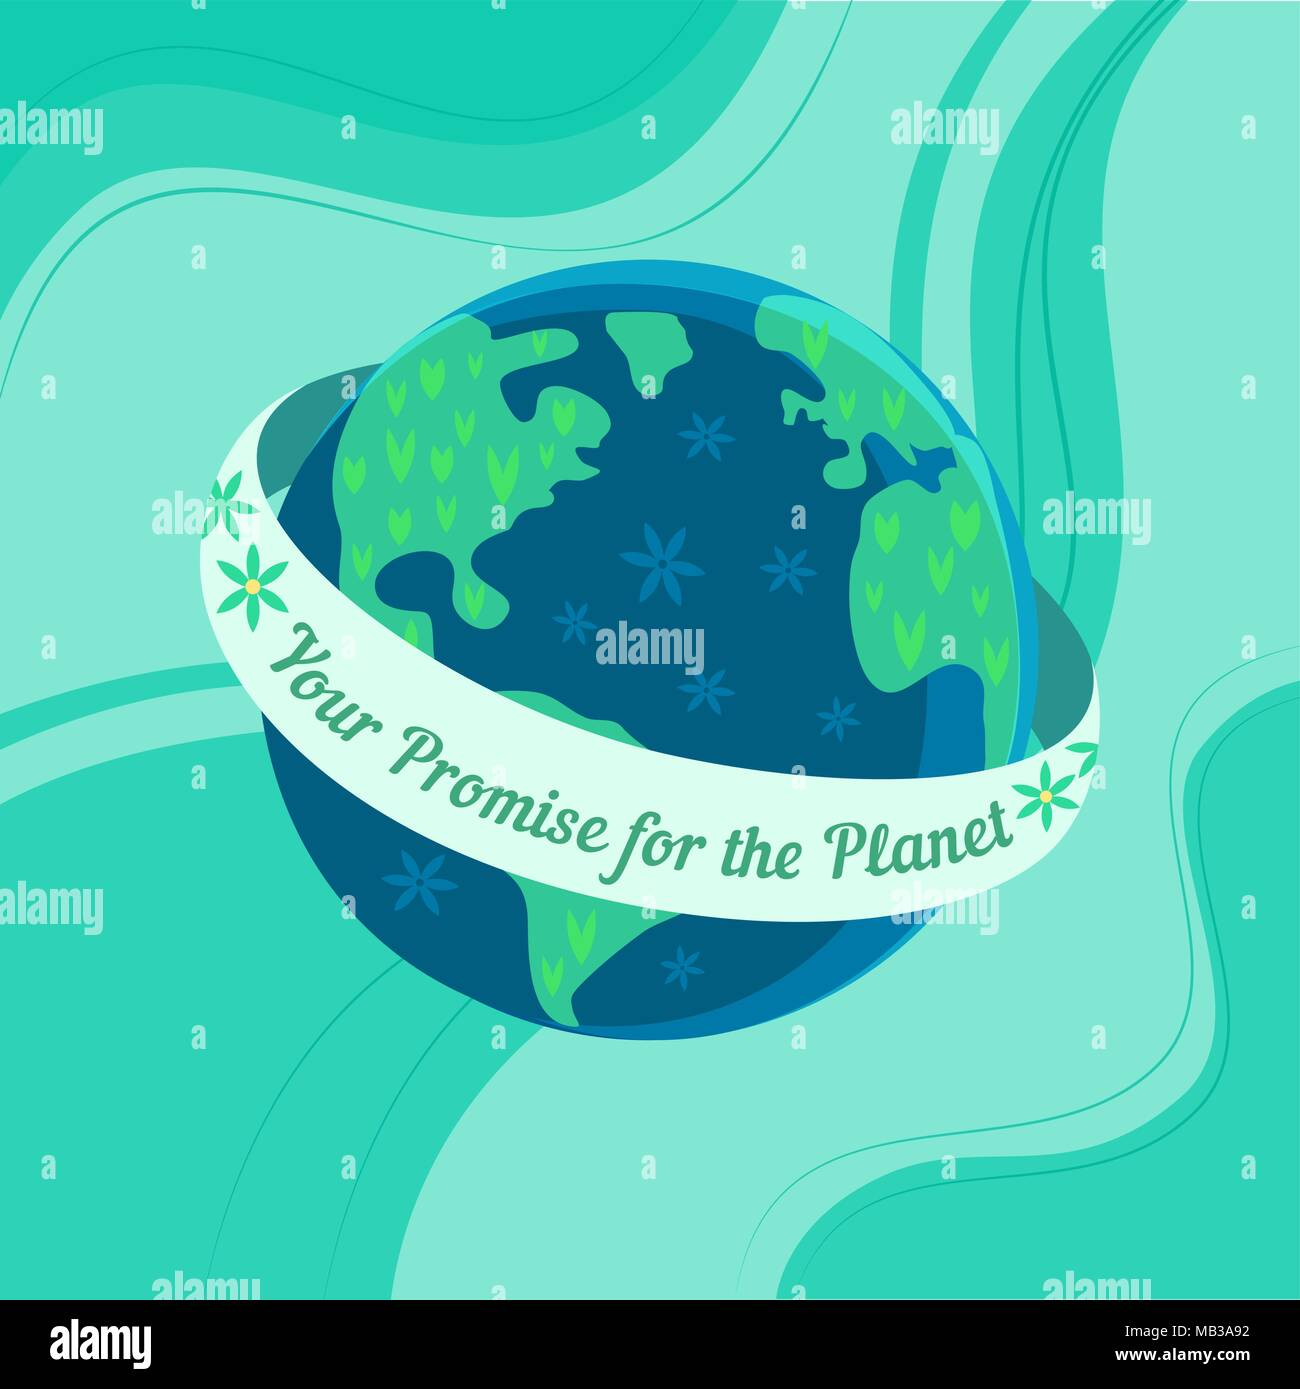 Recycling Poster Stock Photos & Recycling Poster Stock Images - Alamy